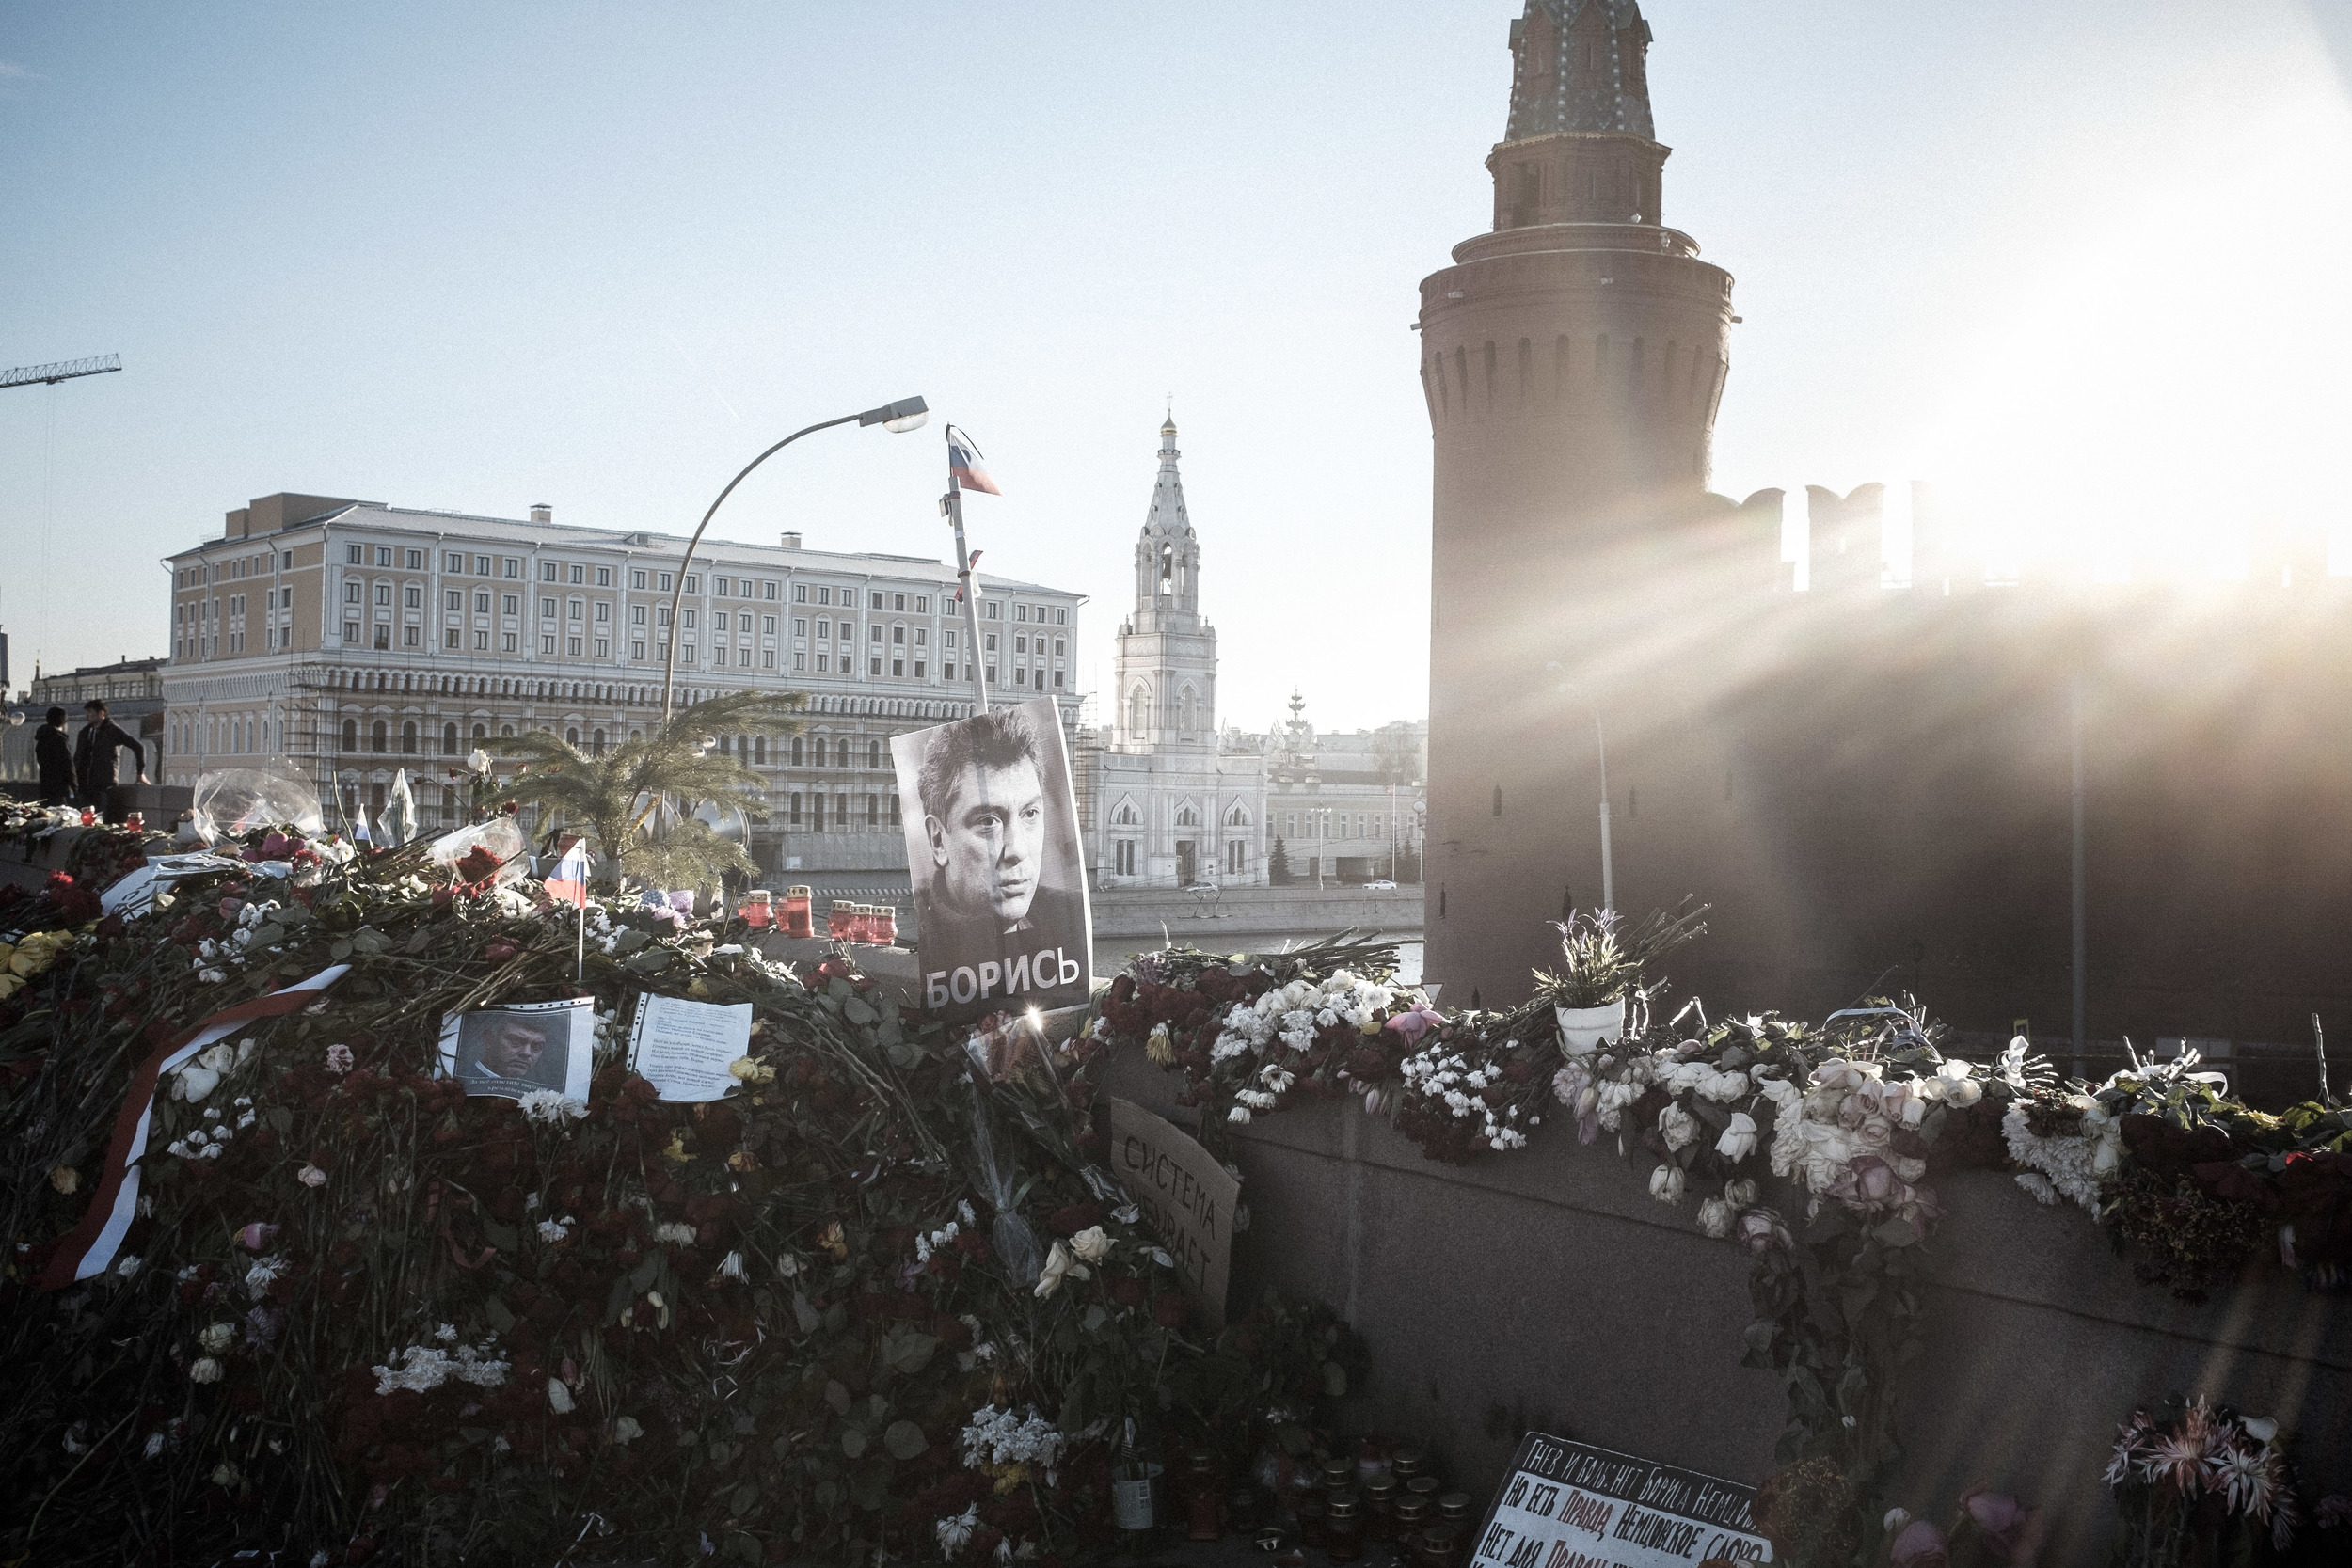 flowers and candles near the site of the murder of Boris Nemtsov. Bolshoy Moskvoretsky Bridge, Moscow, 2015